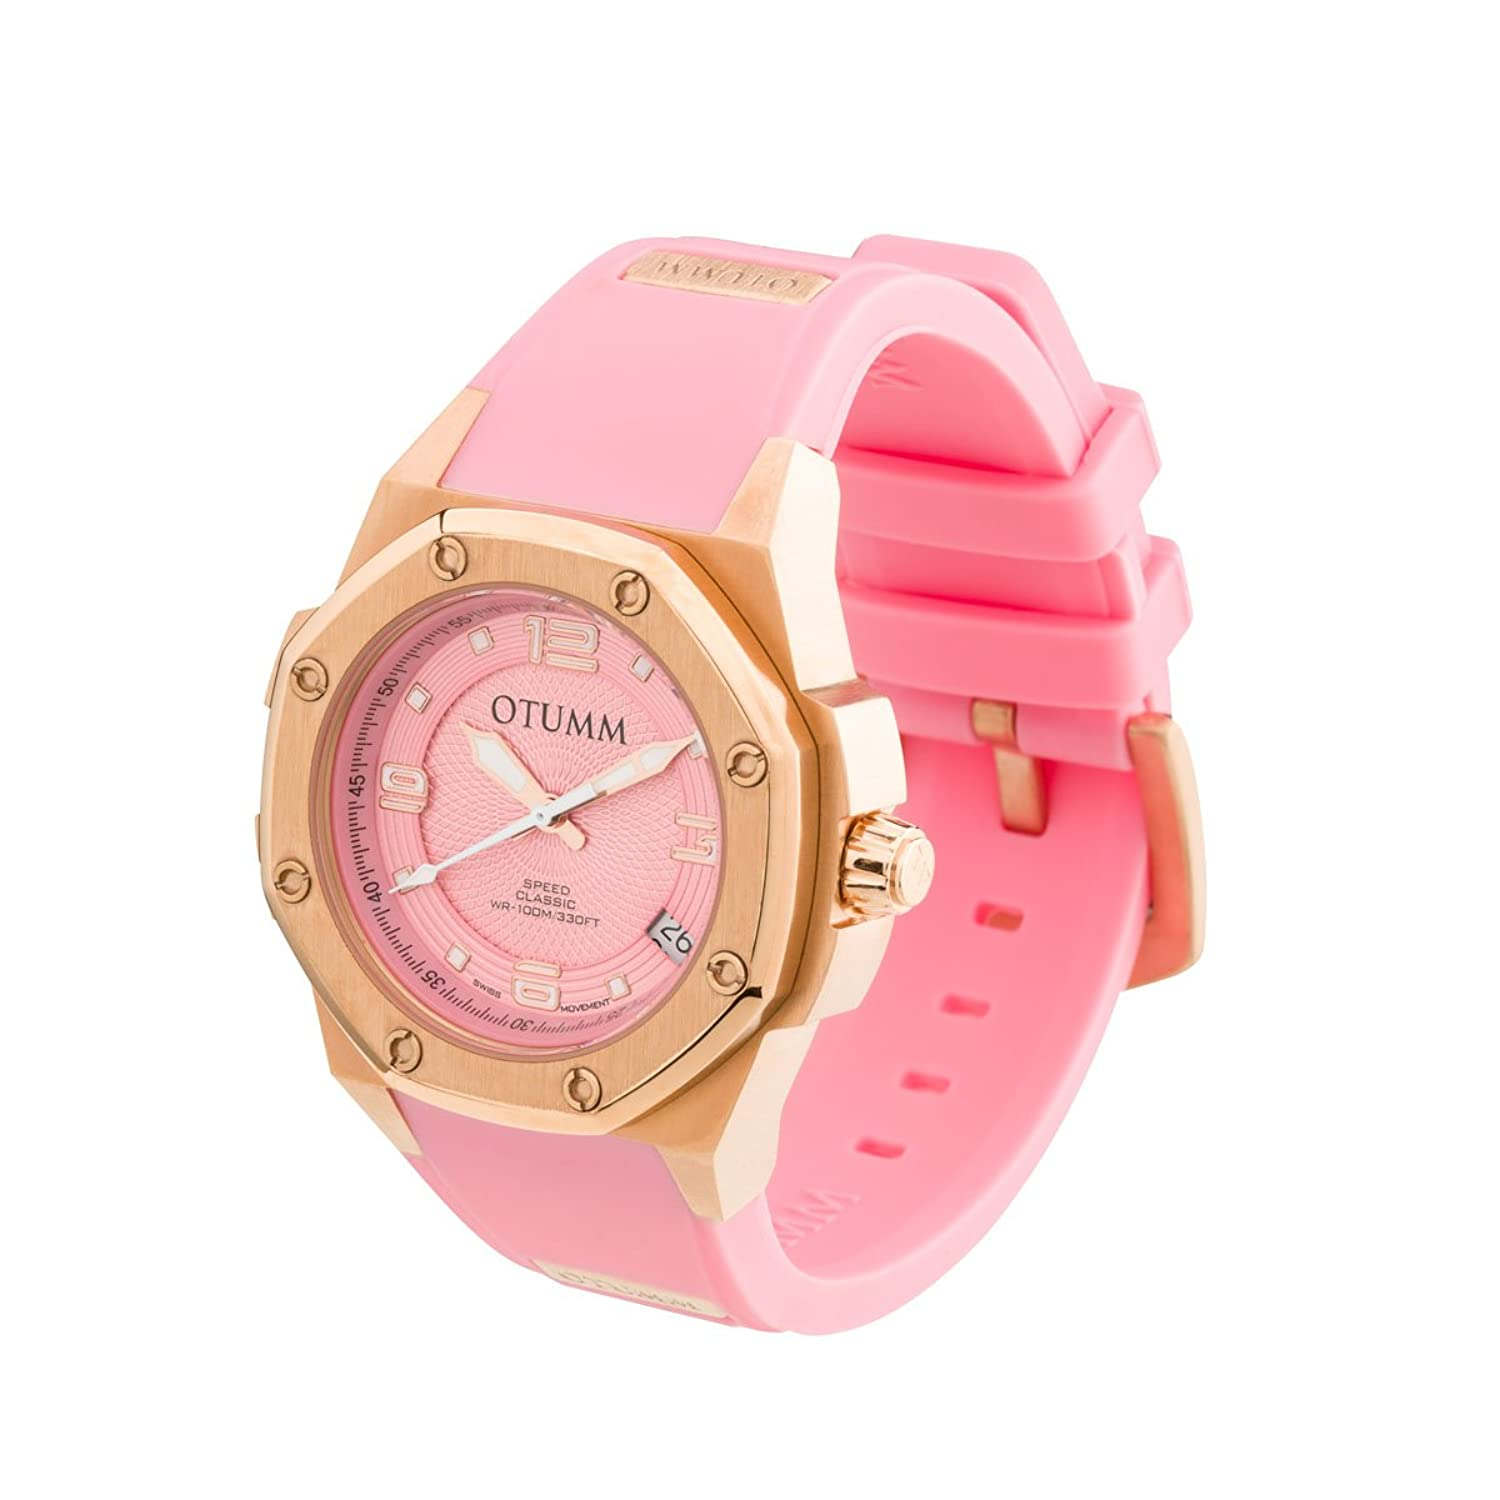 OTUMM Speed Classic 07368 Damen-Armbanduhr - 39mm (analog) - RosÉgold-Pink